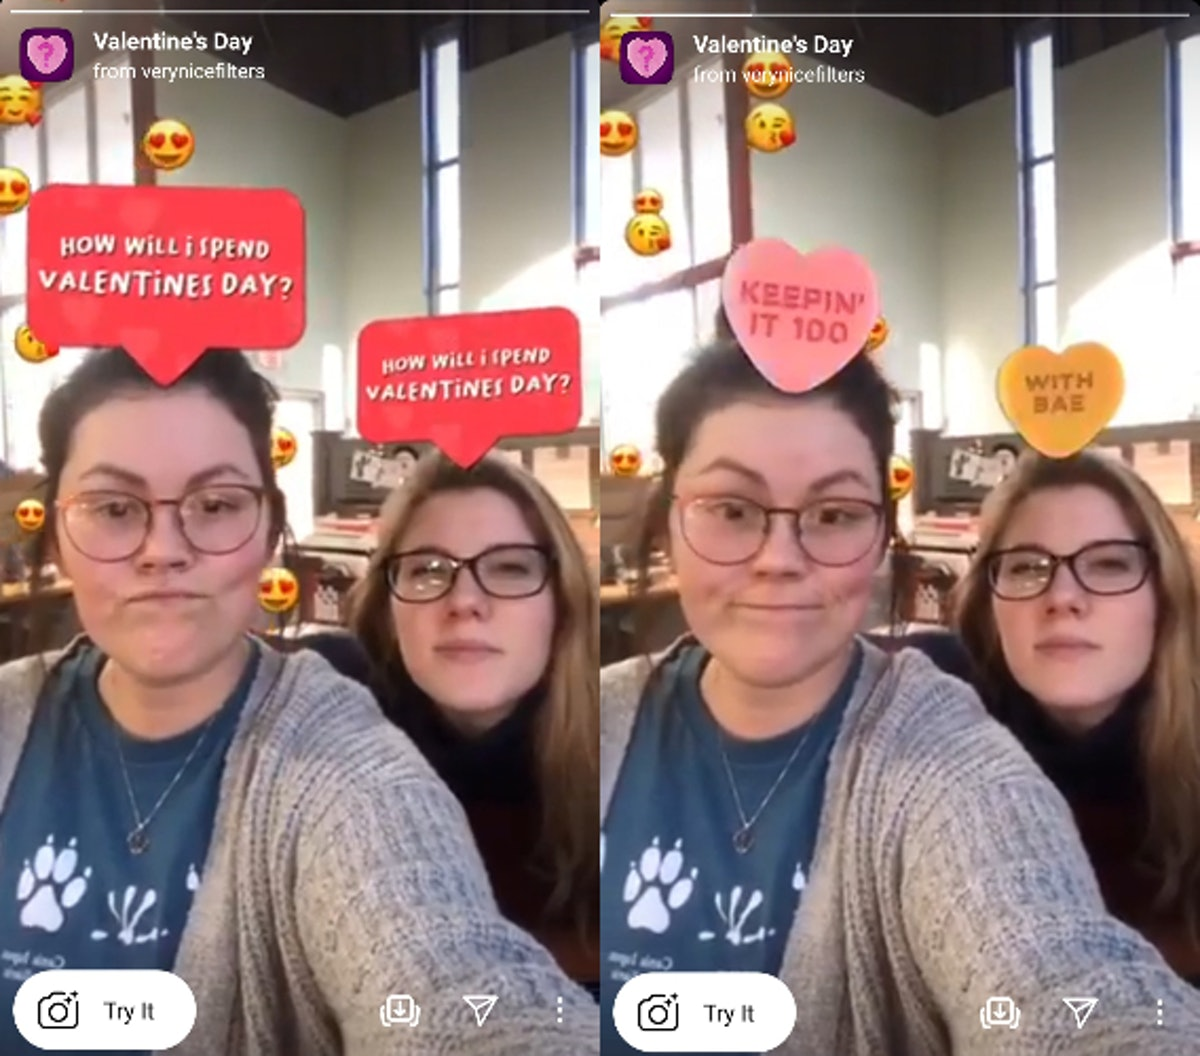 These Valentine's Day 2021 Instagram filters feature cute AR predictors.